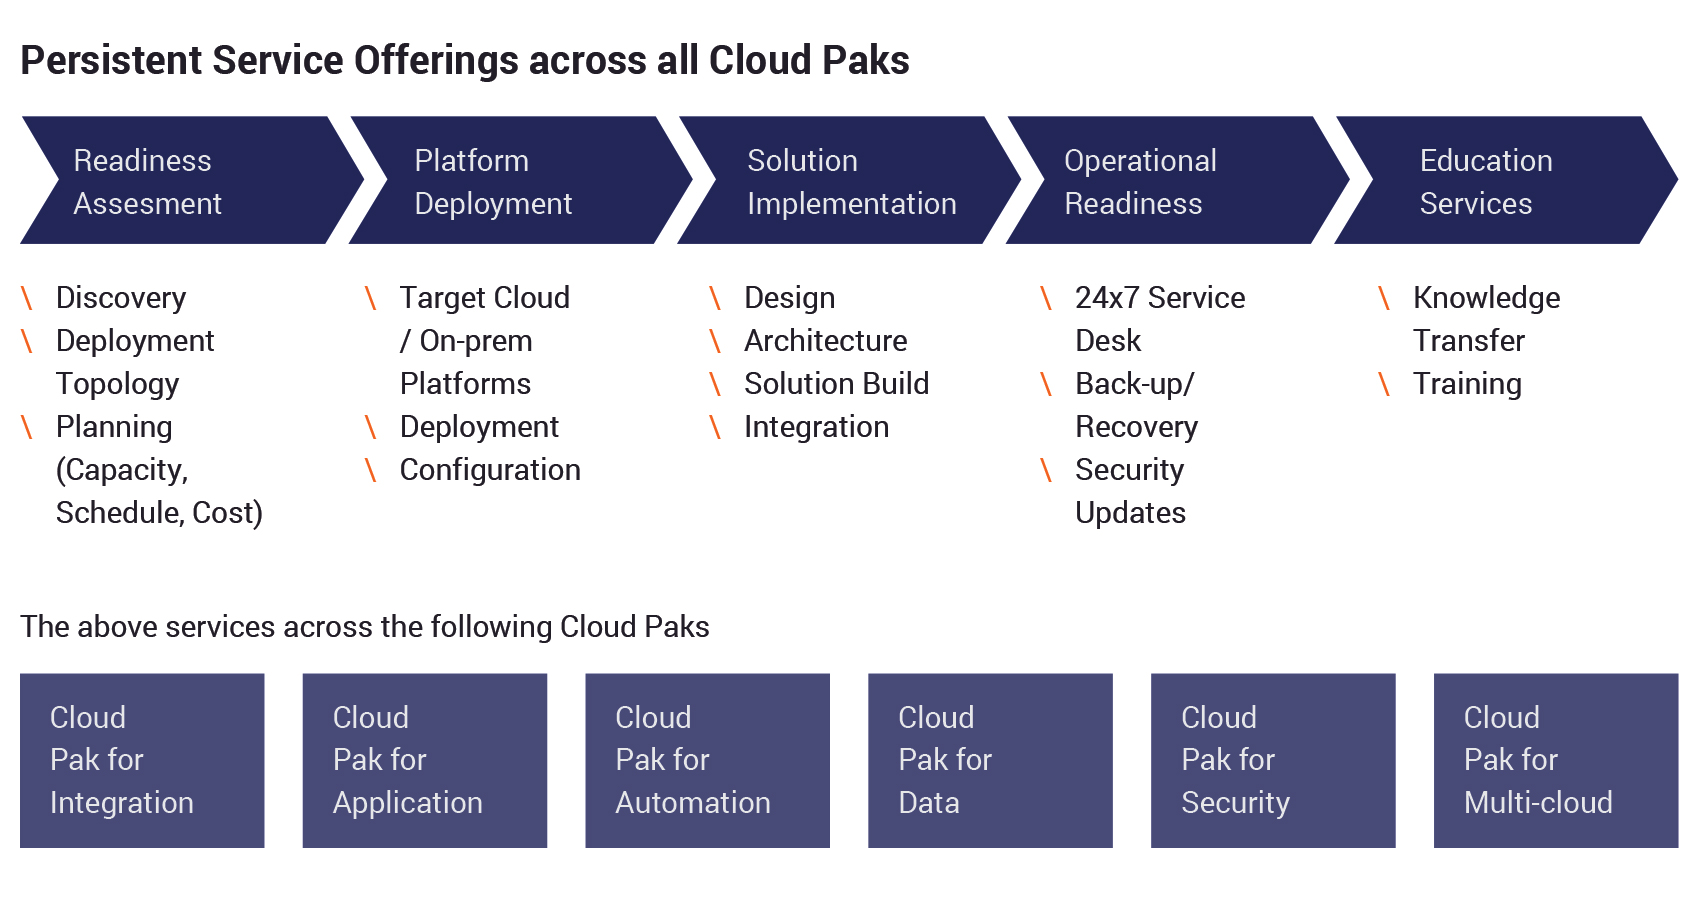 Infographic on Persistent Systems Service Offerings across all Cloud Paks